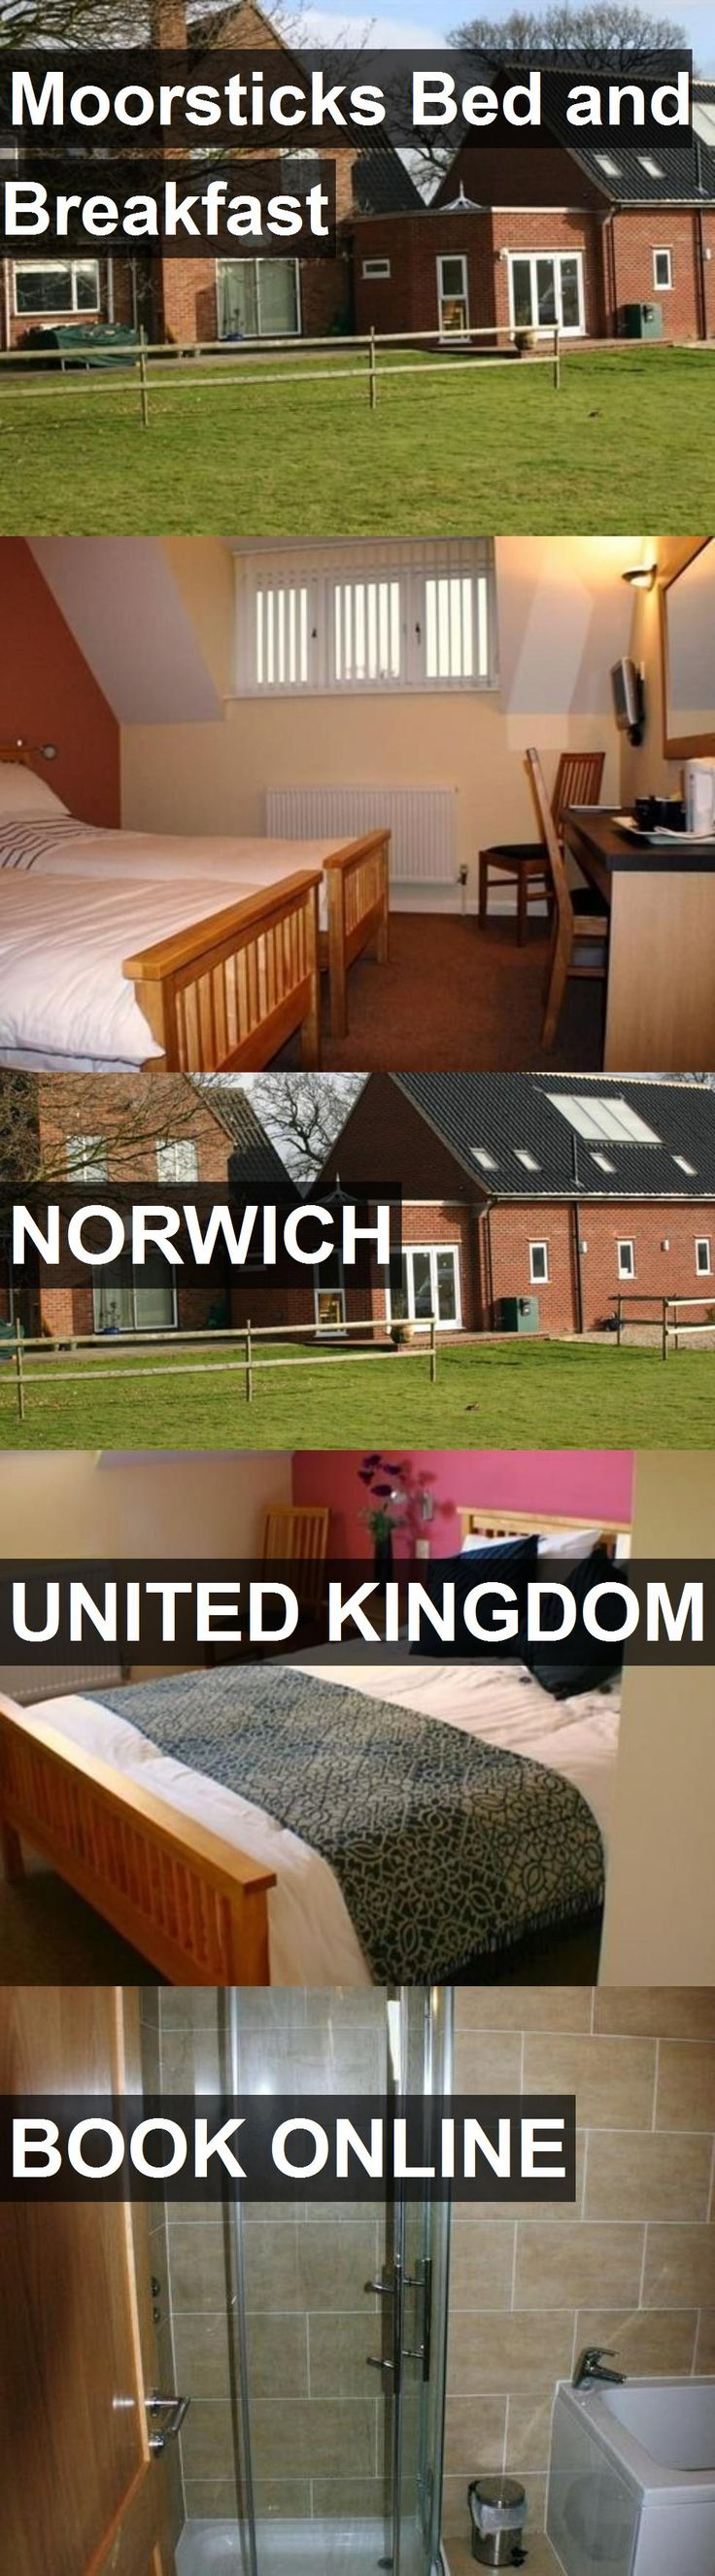 Hotel Moorsticks Bed and Breakfast in Norwich, United Kingdom. For more information, photos, reviews and best prices please follow the link. #UnitedKingdom #Norwich #MoorsticksBedandBreakfast #hotel #travel #vacation